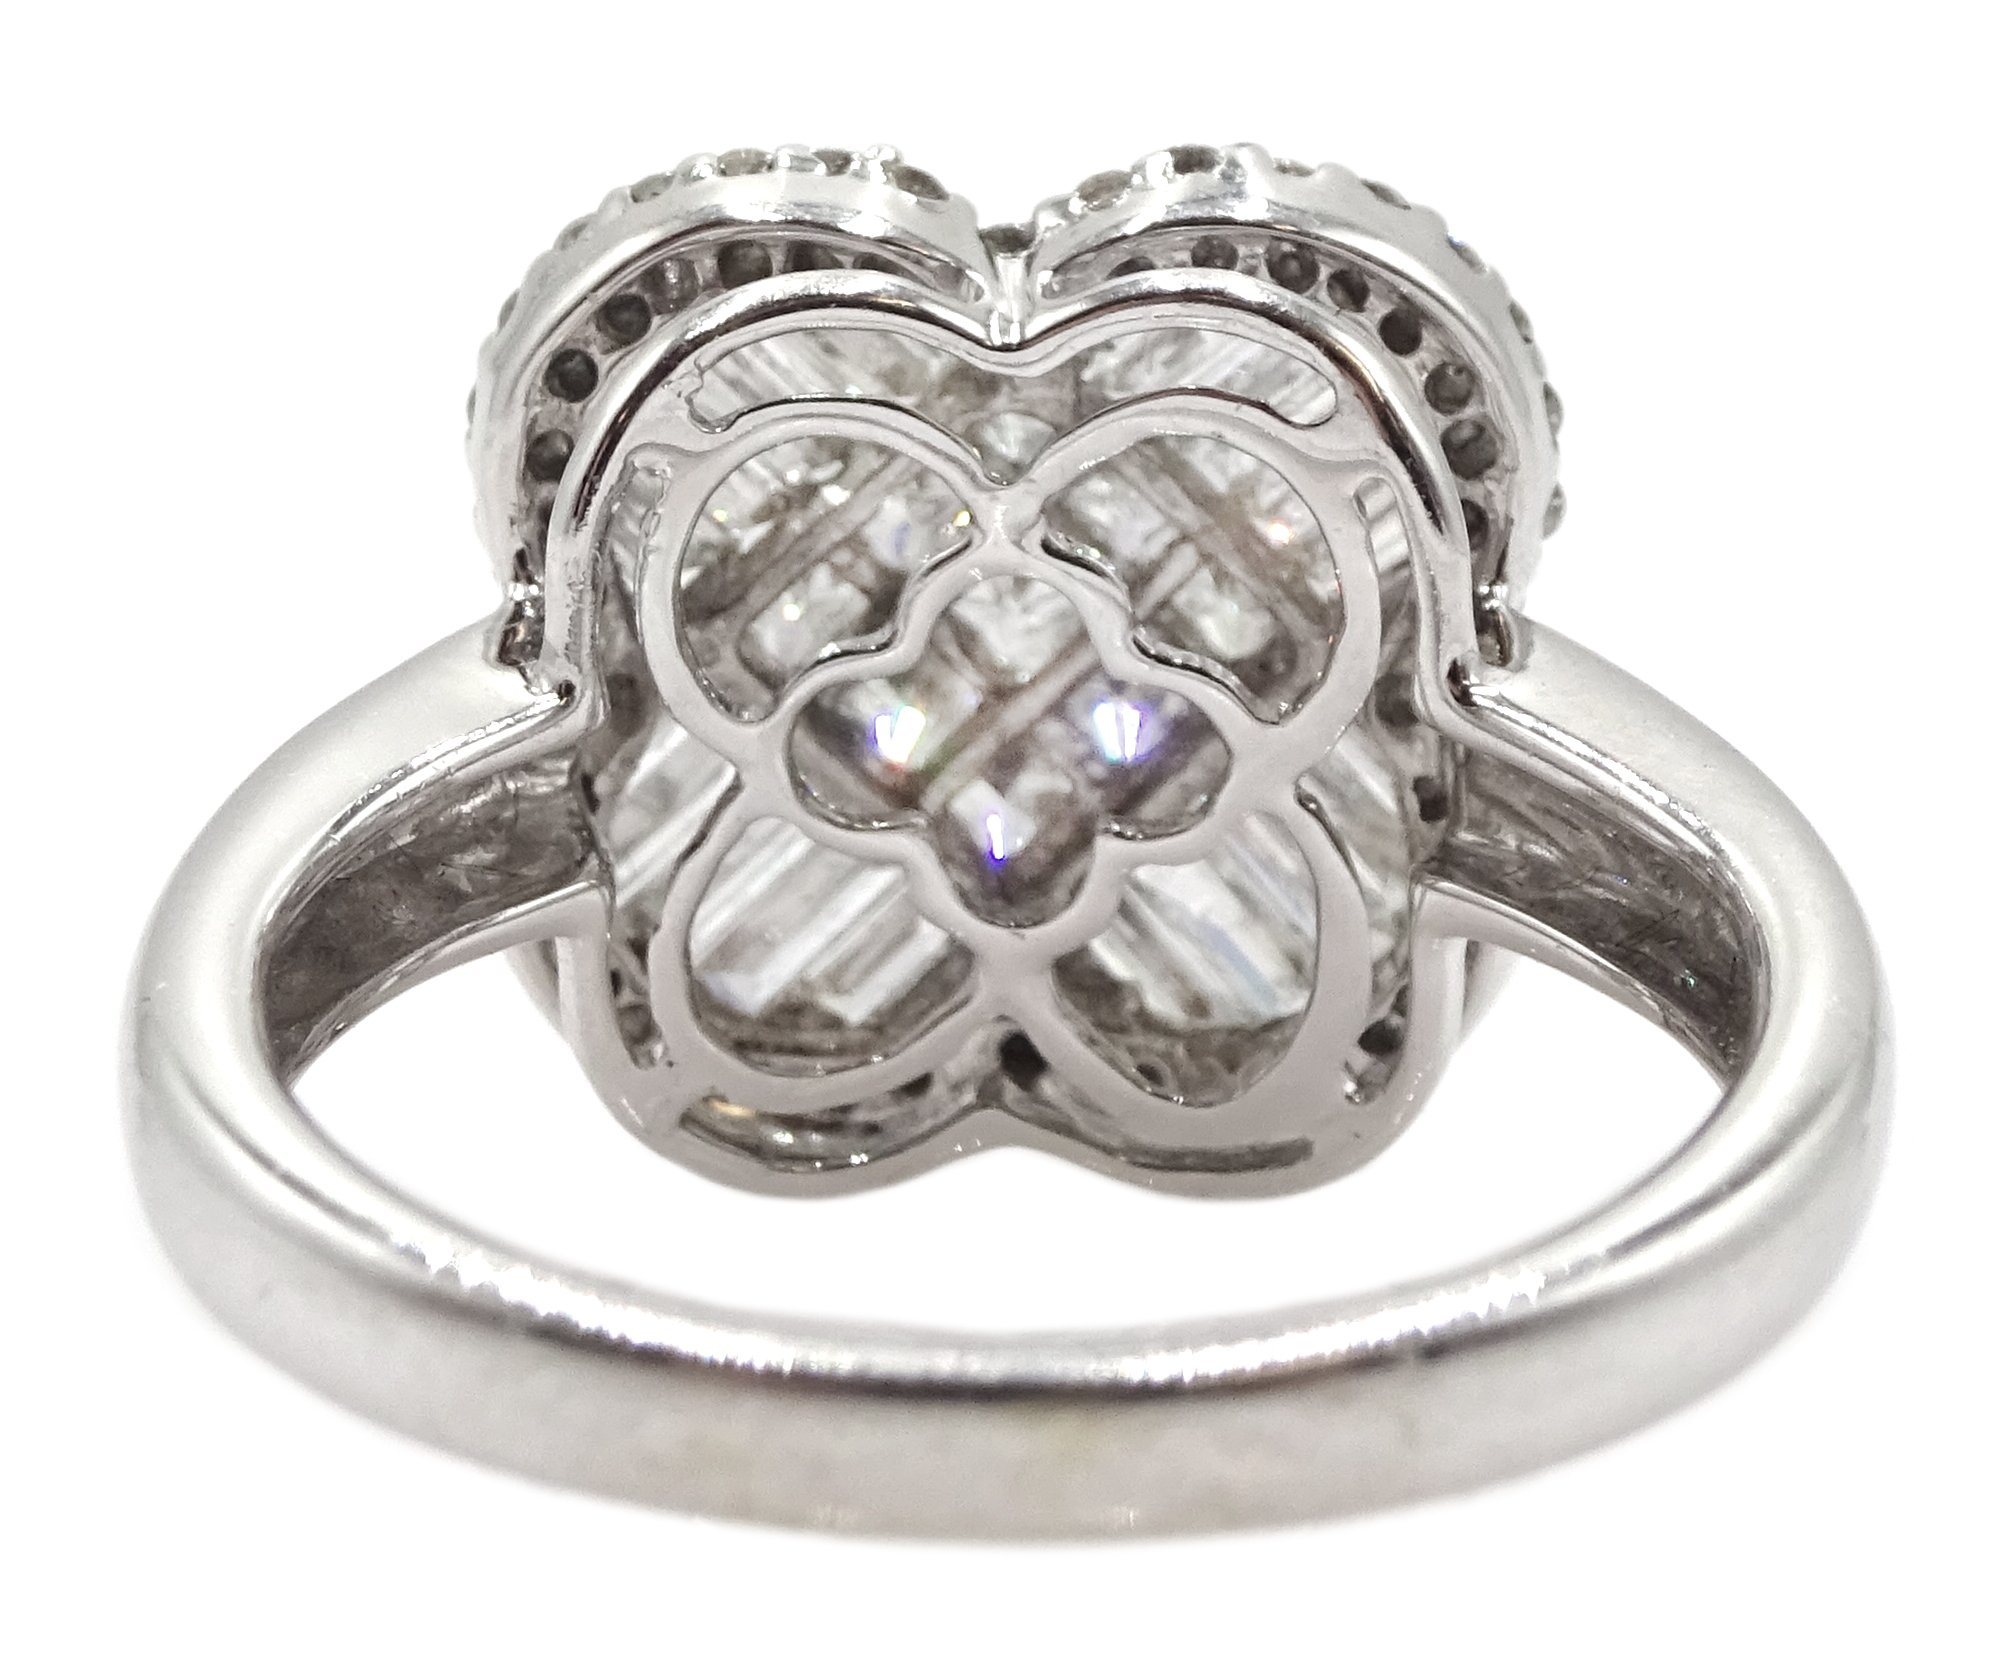 18ct white gold and diamond cluster ring - Image 6 of 6